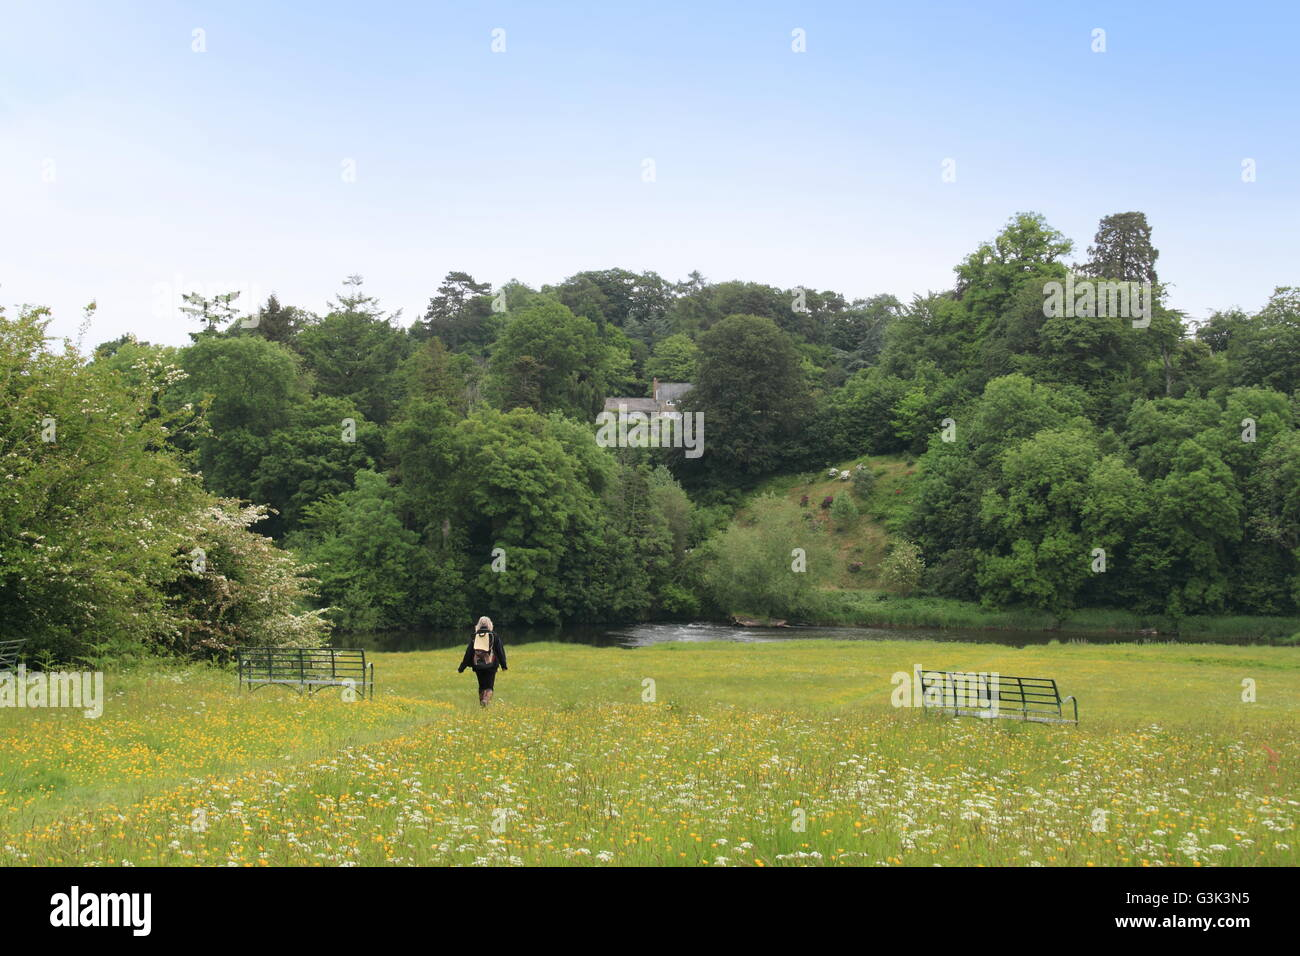 Wyecliff from The Warren, Hay-on-Wye, Powys, Wales, Great Britain, United Kingdom, UK, Europe - Stock Image